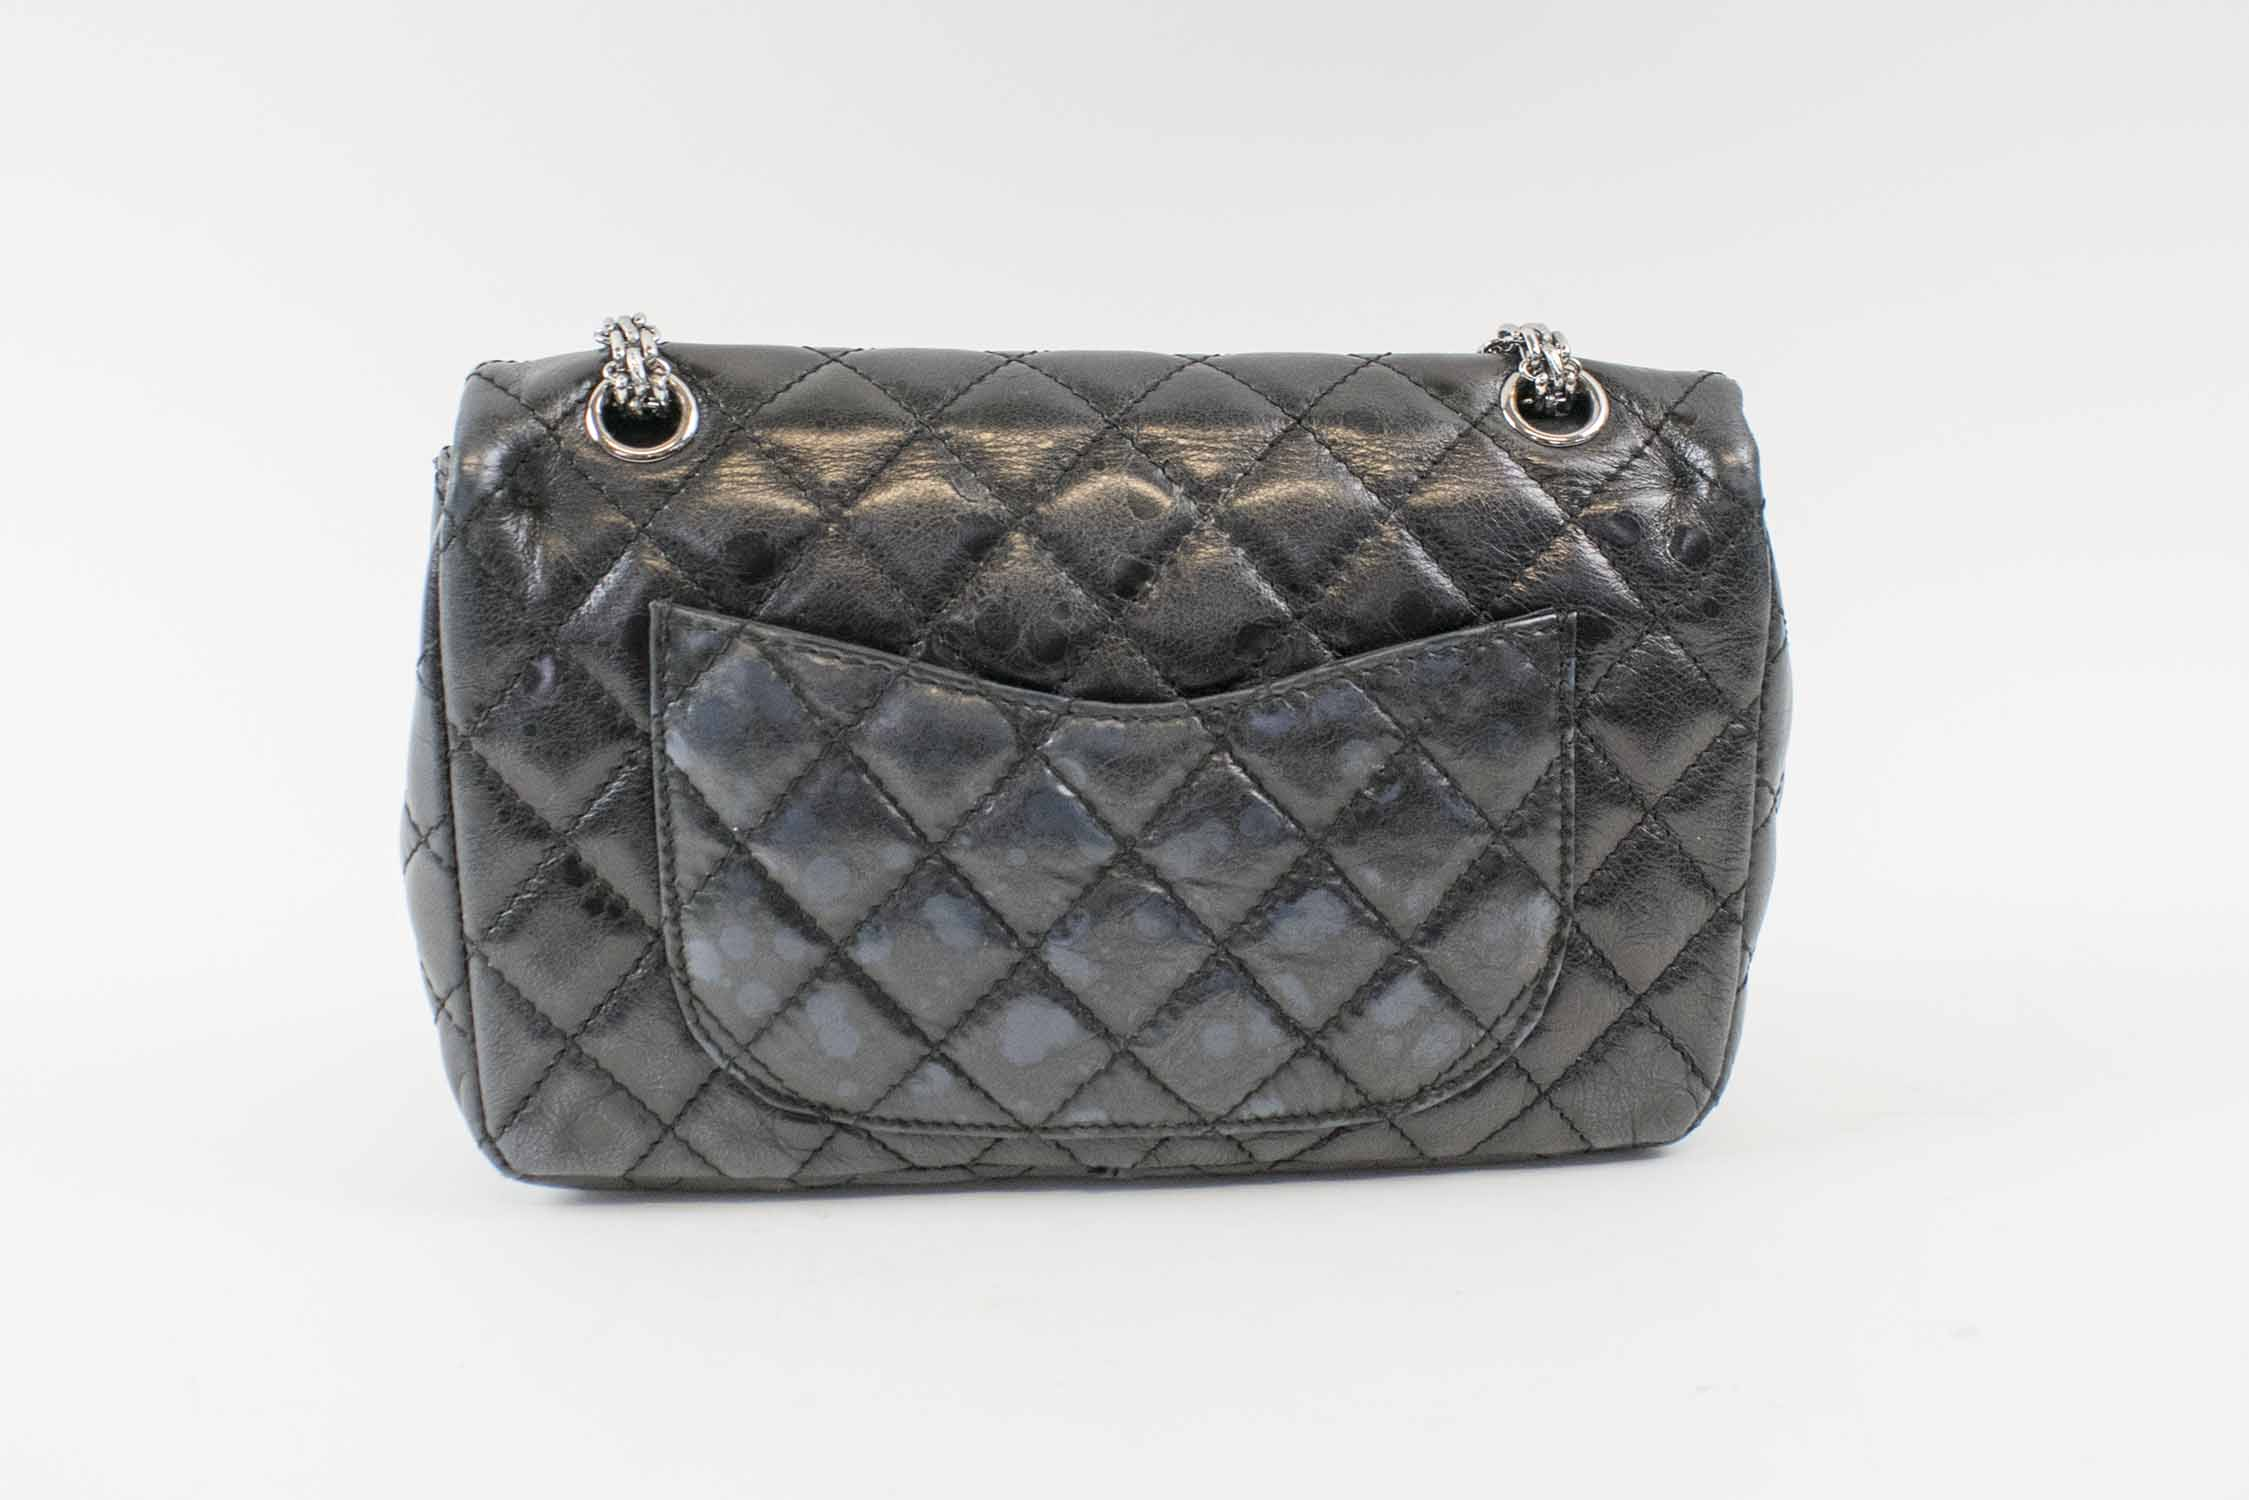 5afafe468d CHANEL REISSUE 2.55 DOUBLE FLAP HANDBAG, black leather with black ...